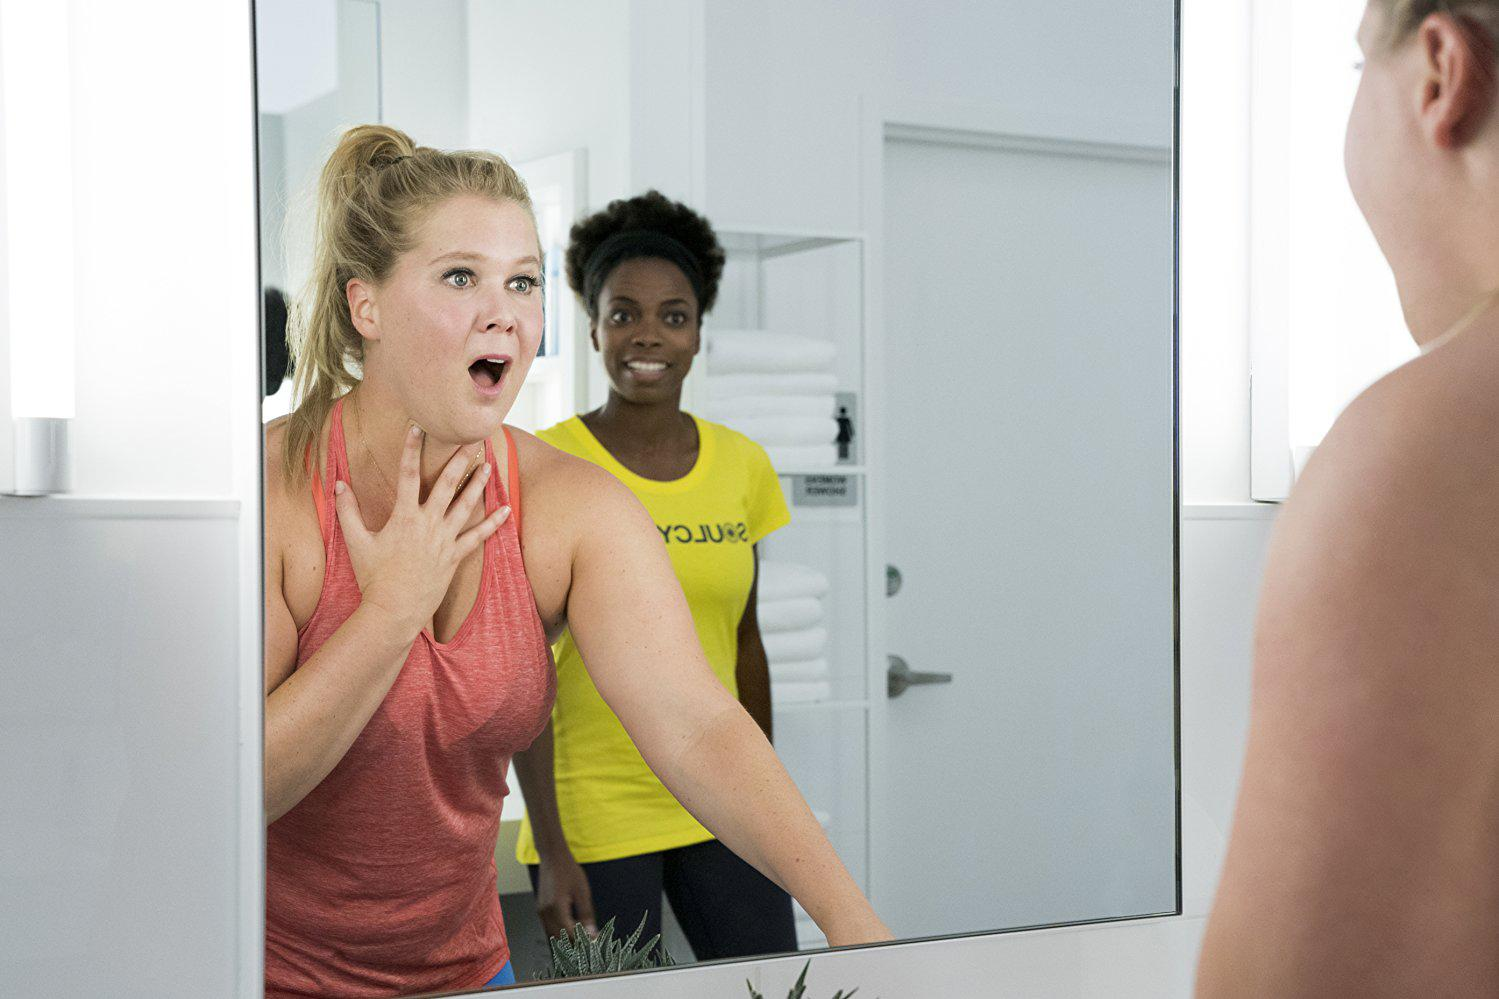 """VOLTAGE PICTURES An ecstatically surprised Renee Bennett (Amy Schumer) discovers her """"new body"""" after a head injury in a SoulCycle class. """"I Feel Pretty"""" plays off of the comedic situations Bennett finds herself after a boost in body confidence. The film opened third at the U.S. box office with $16 million."""